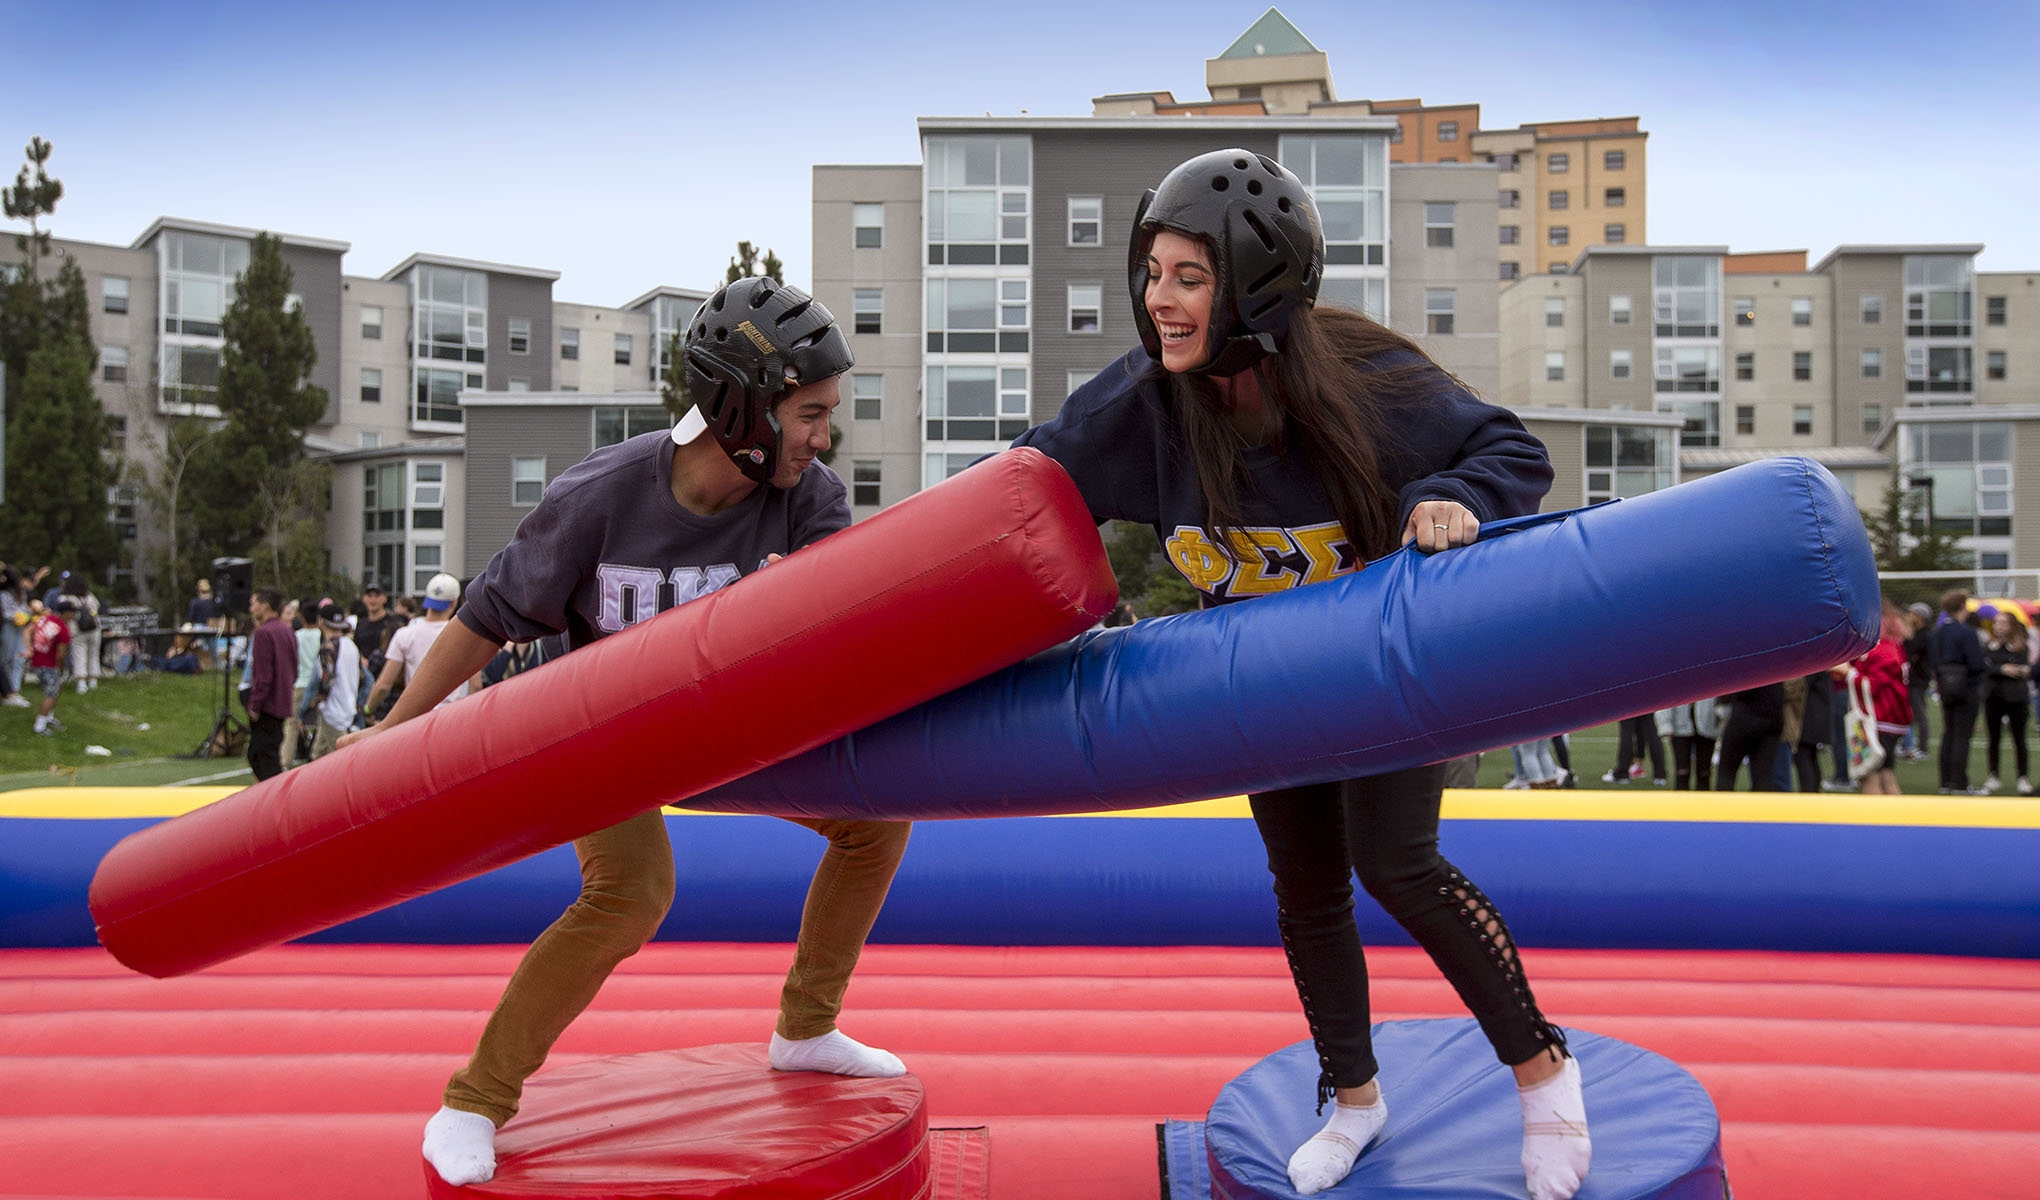 A female and male student try to knock each other off blocks using foam batons.